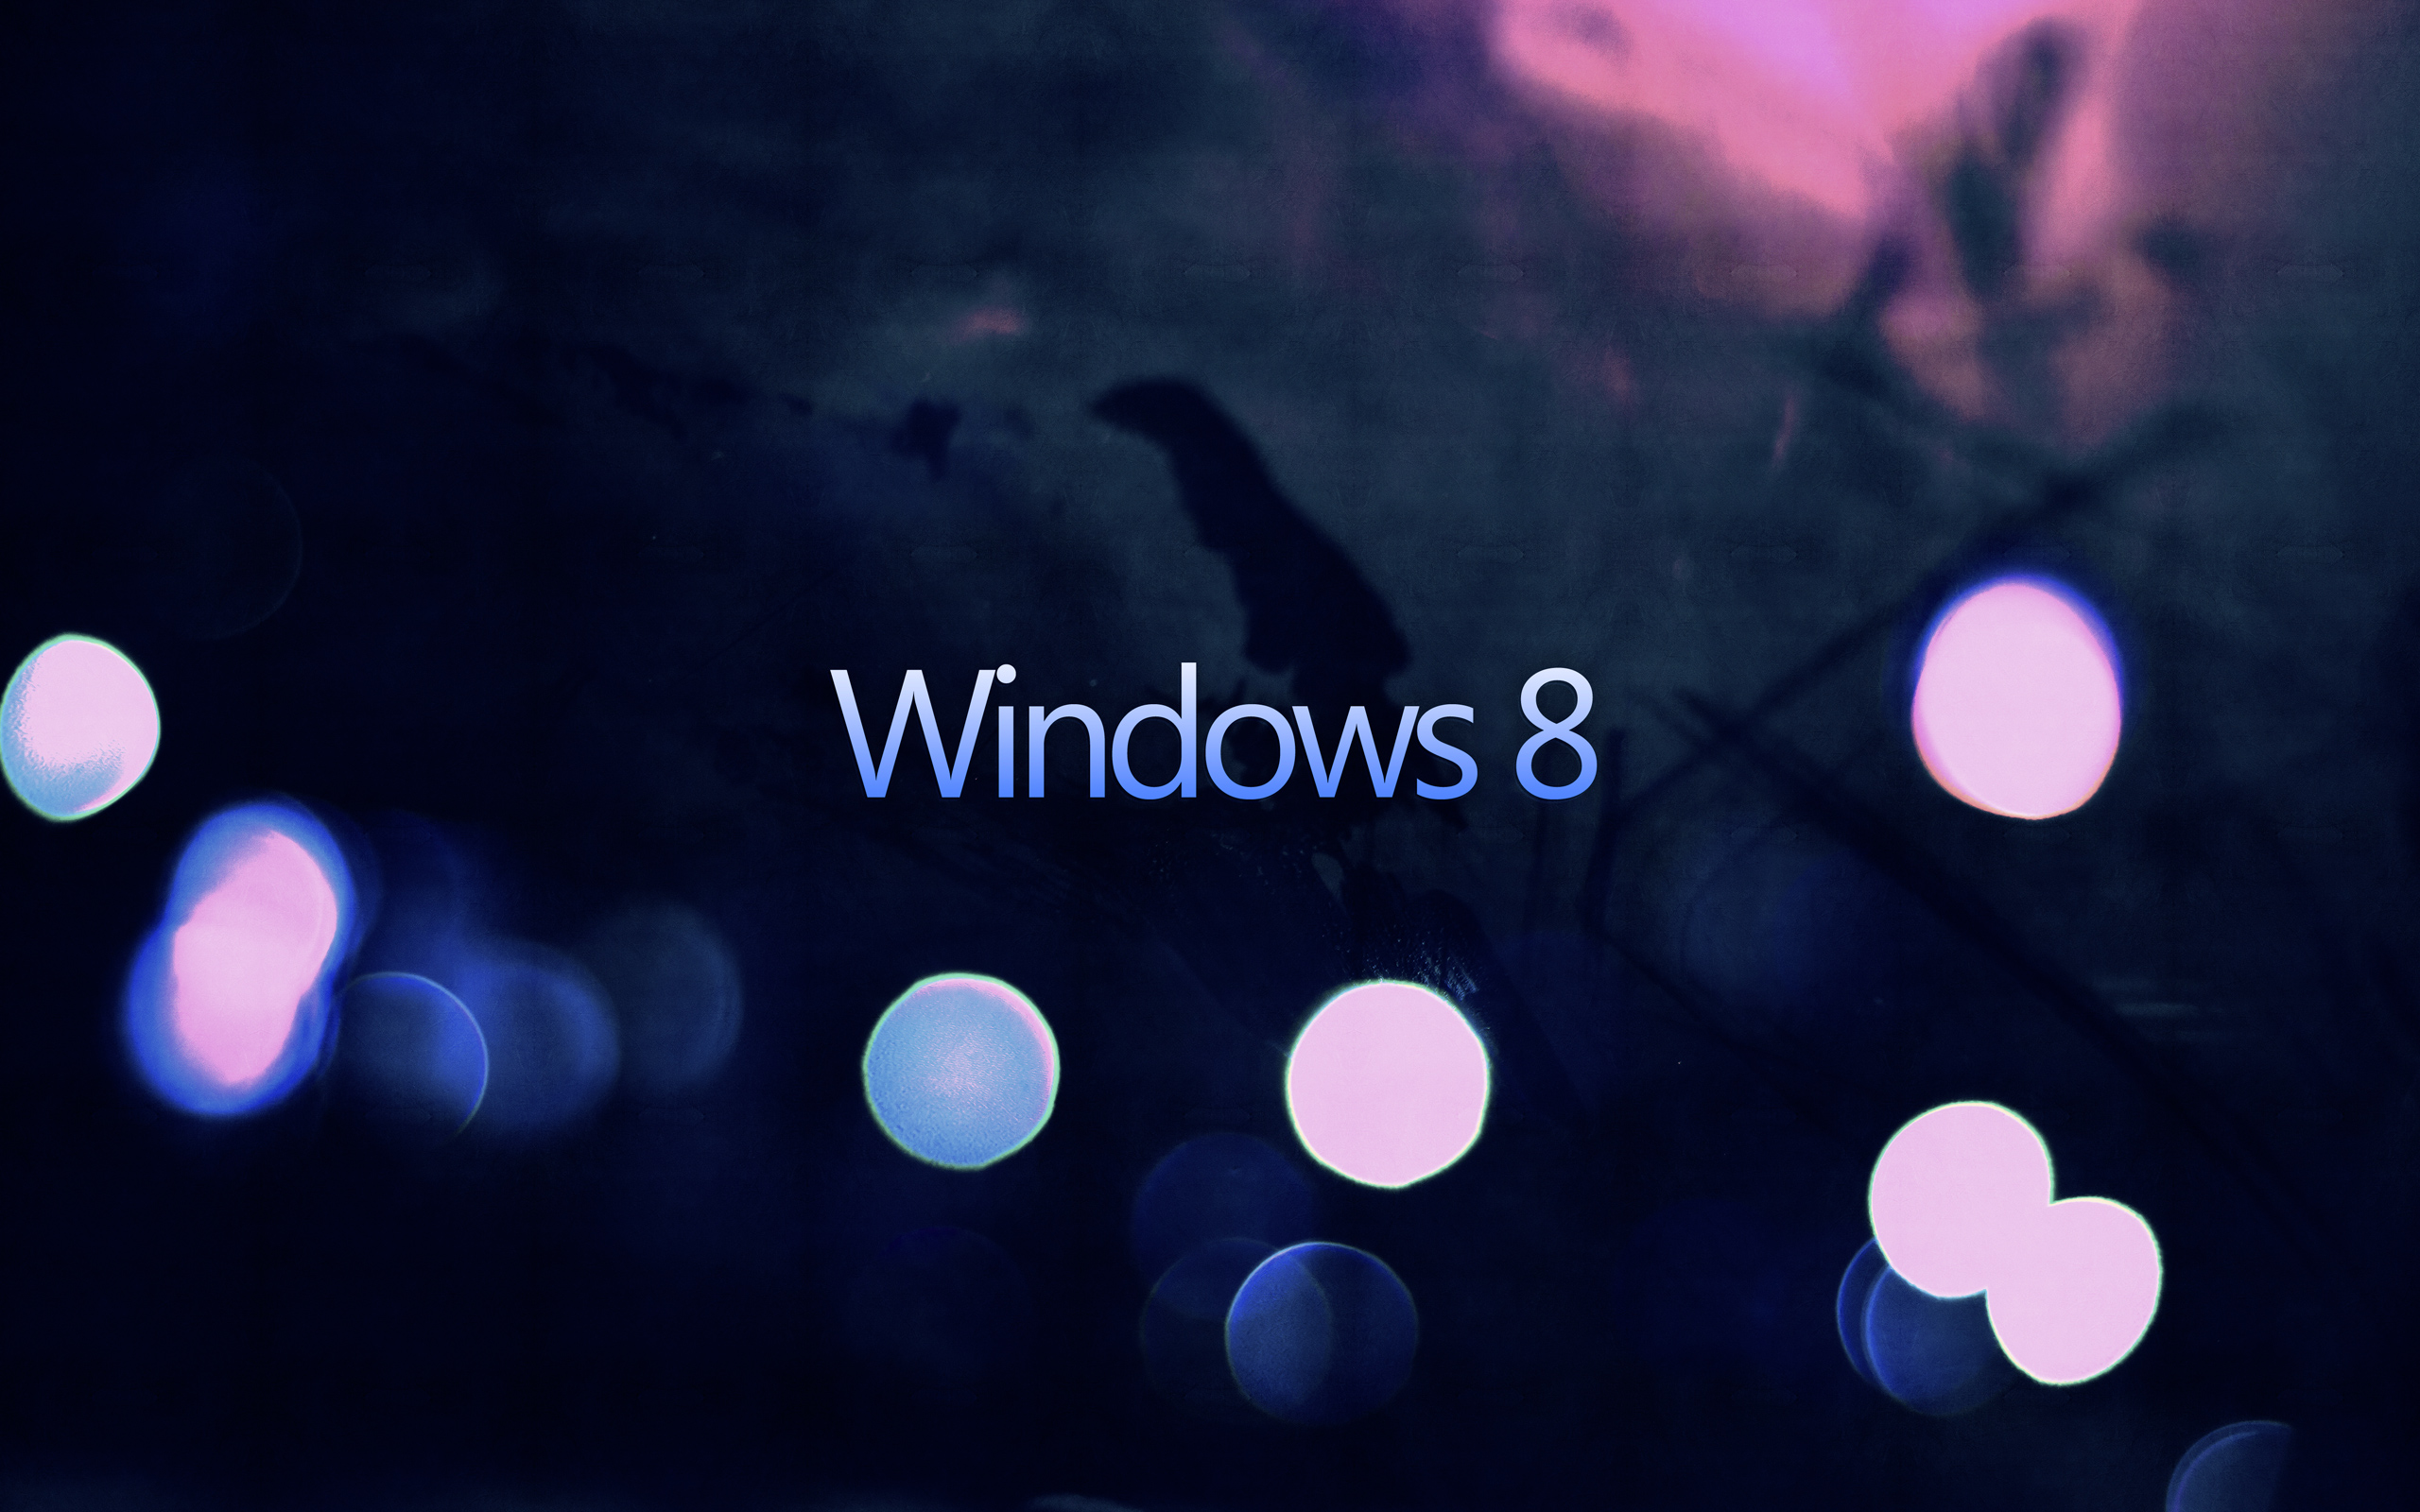 Windows 8 HD Wallpaper Purple Wallpaper